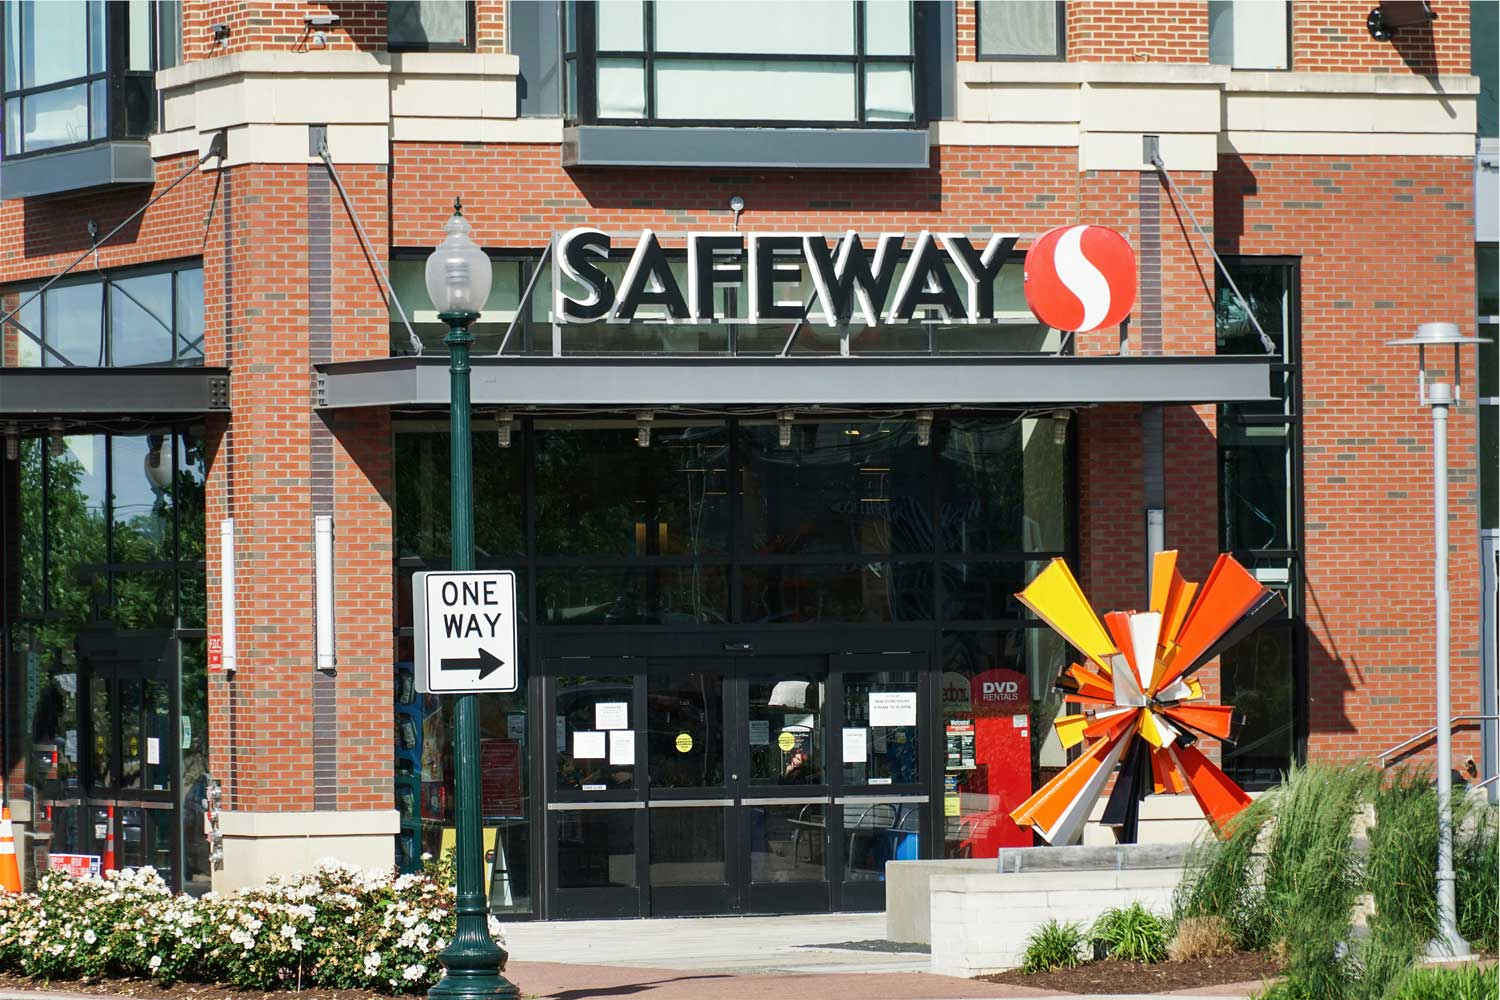 Safeway is 5 minutes from Village Square West Apartments in North Bethesda, MD